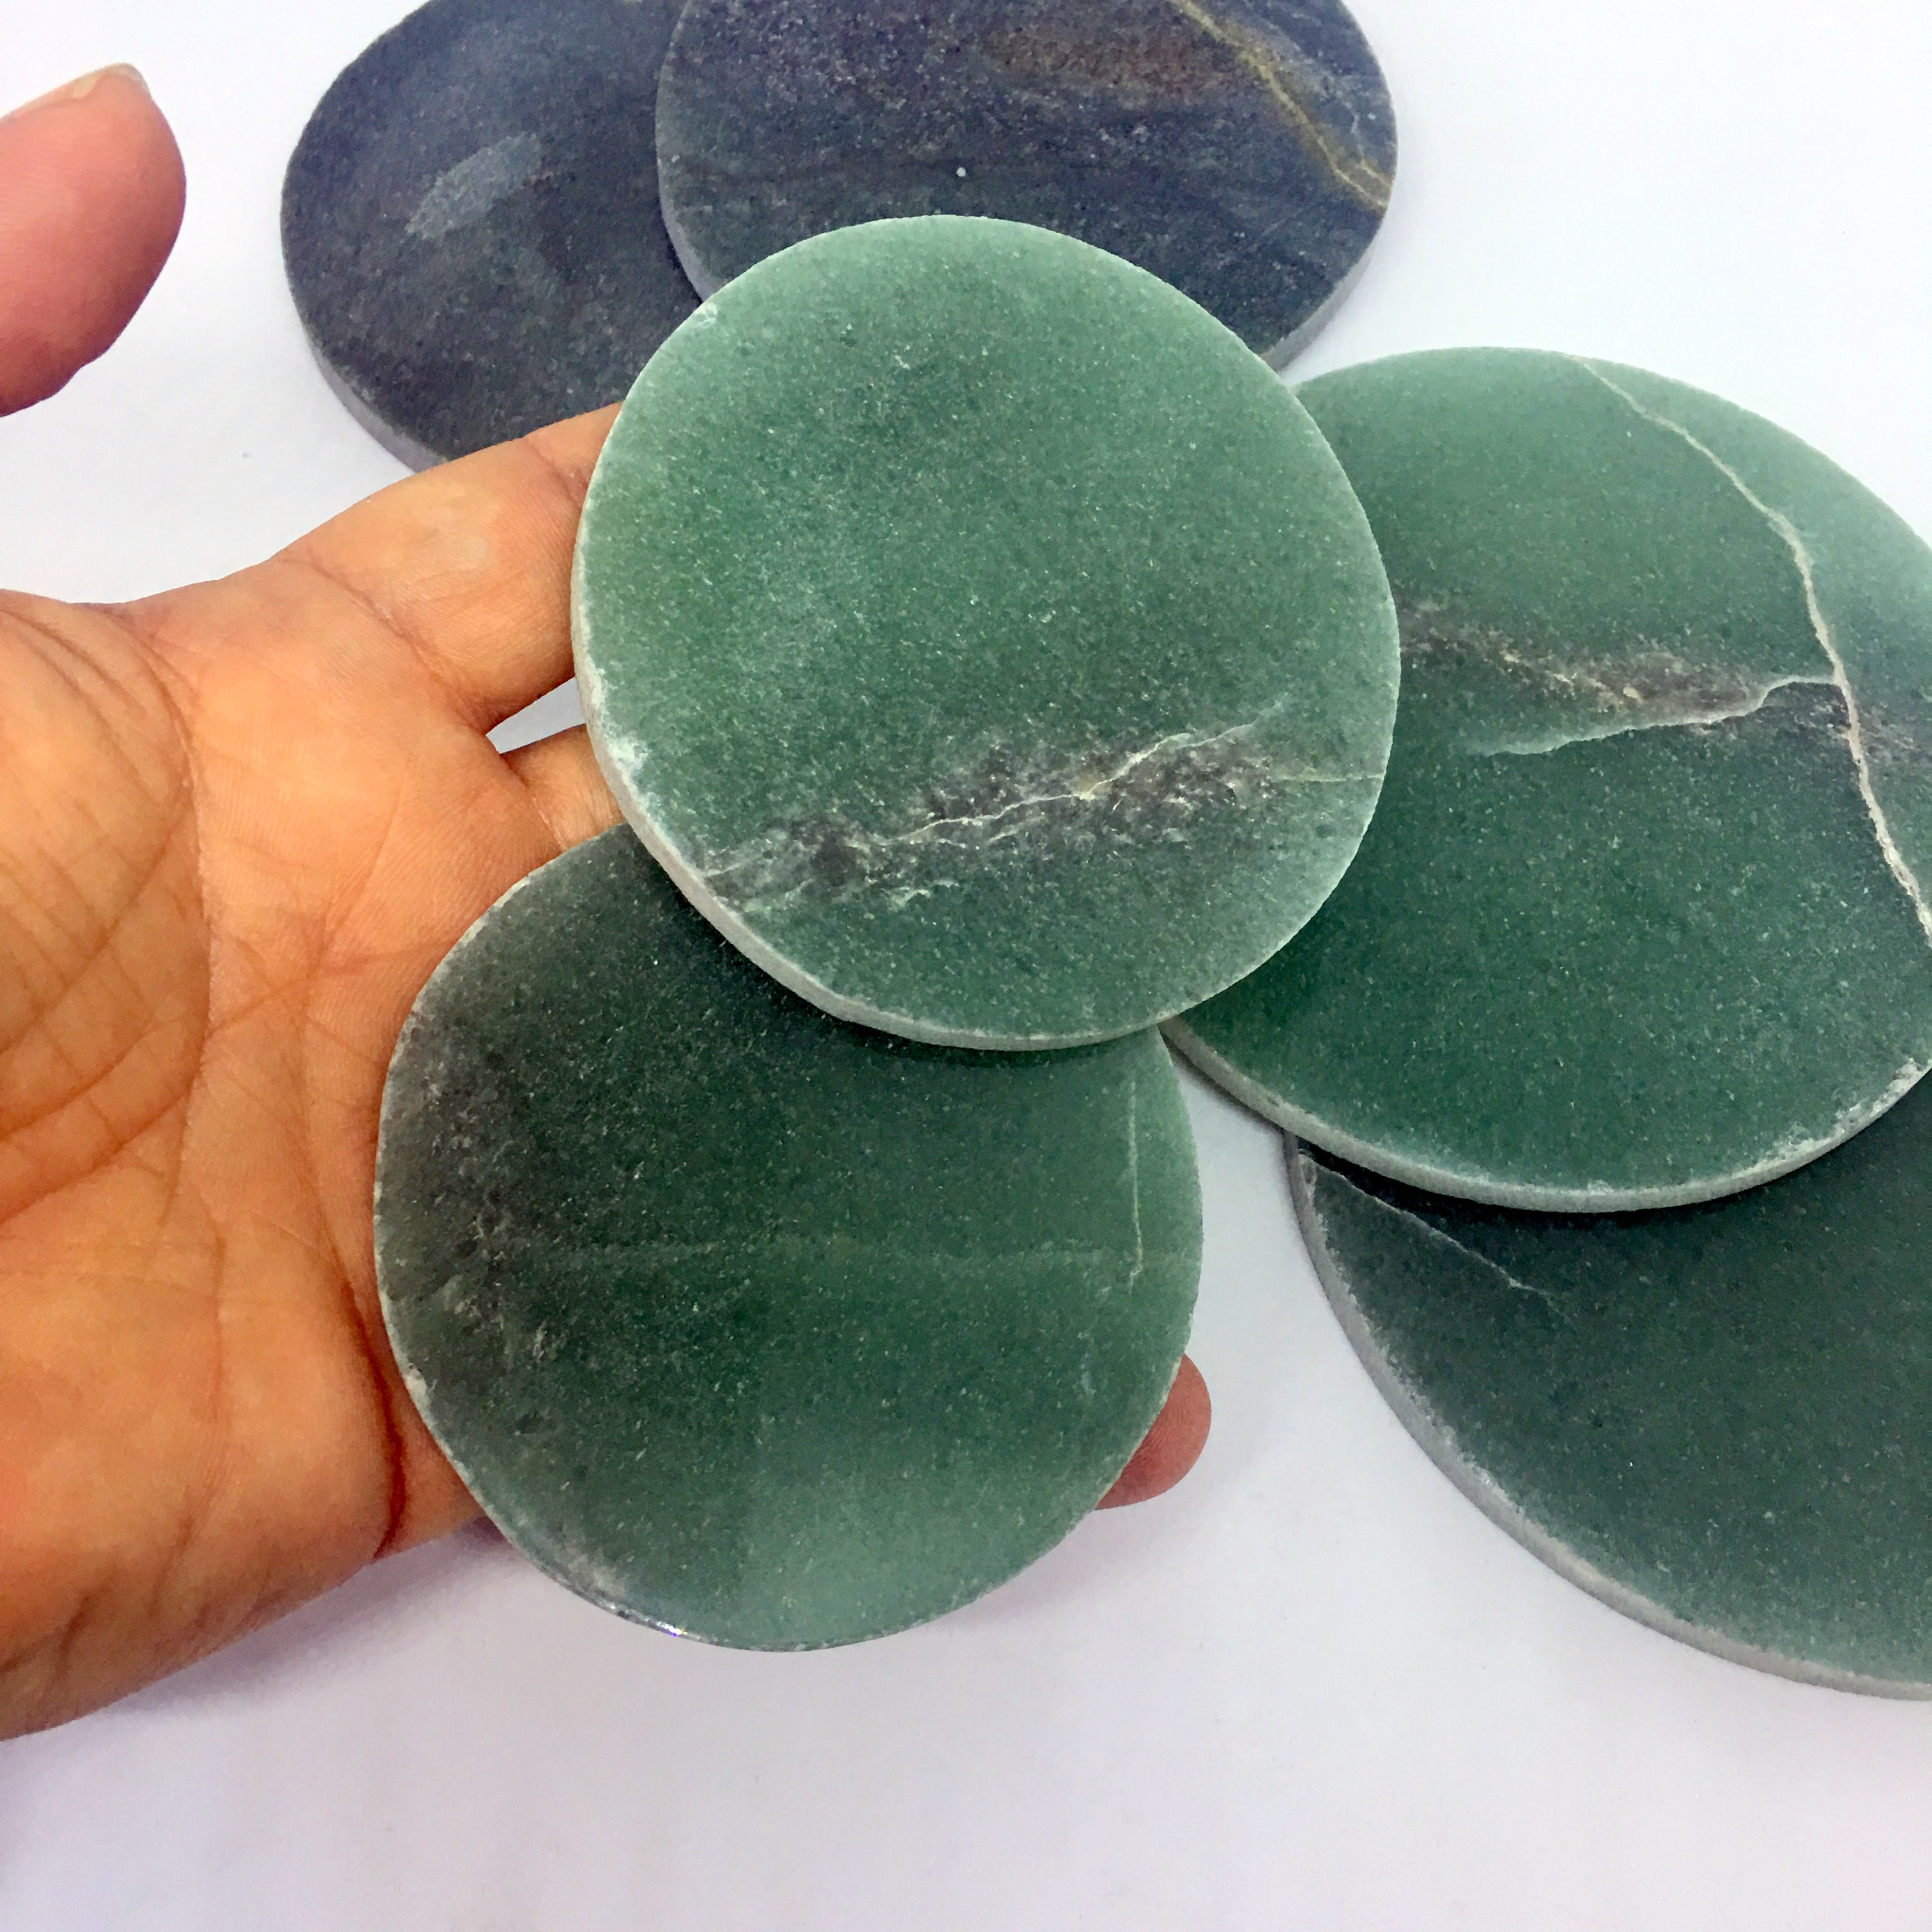 Stones from Uruguay - Green Quartz Coasters with Unpolished Edge,#4